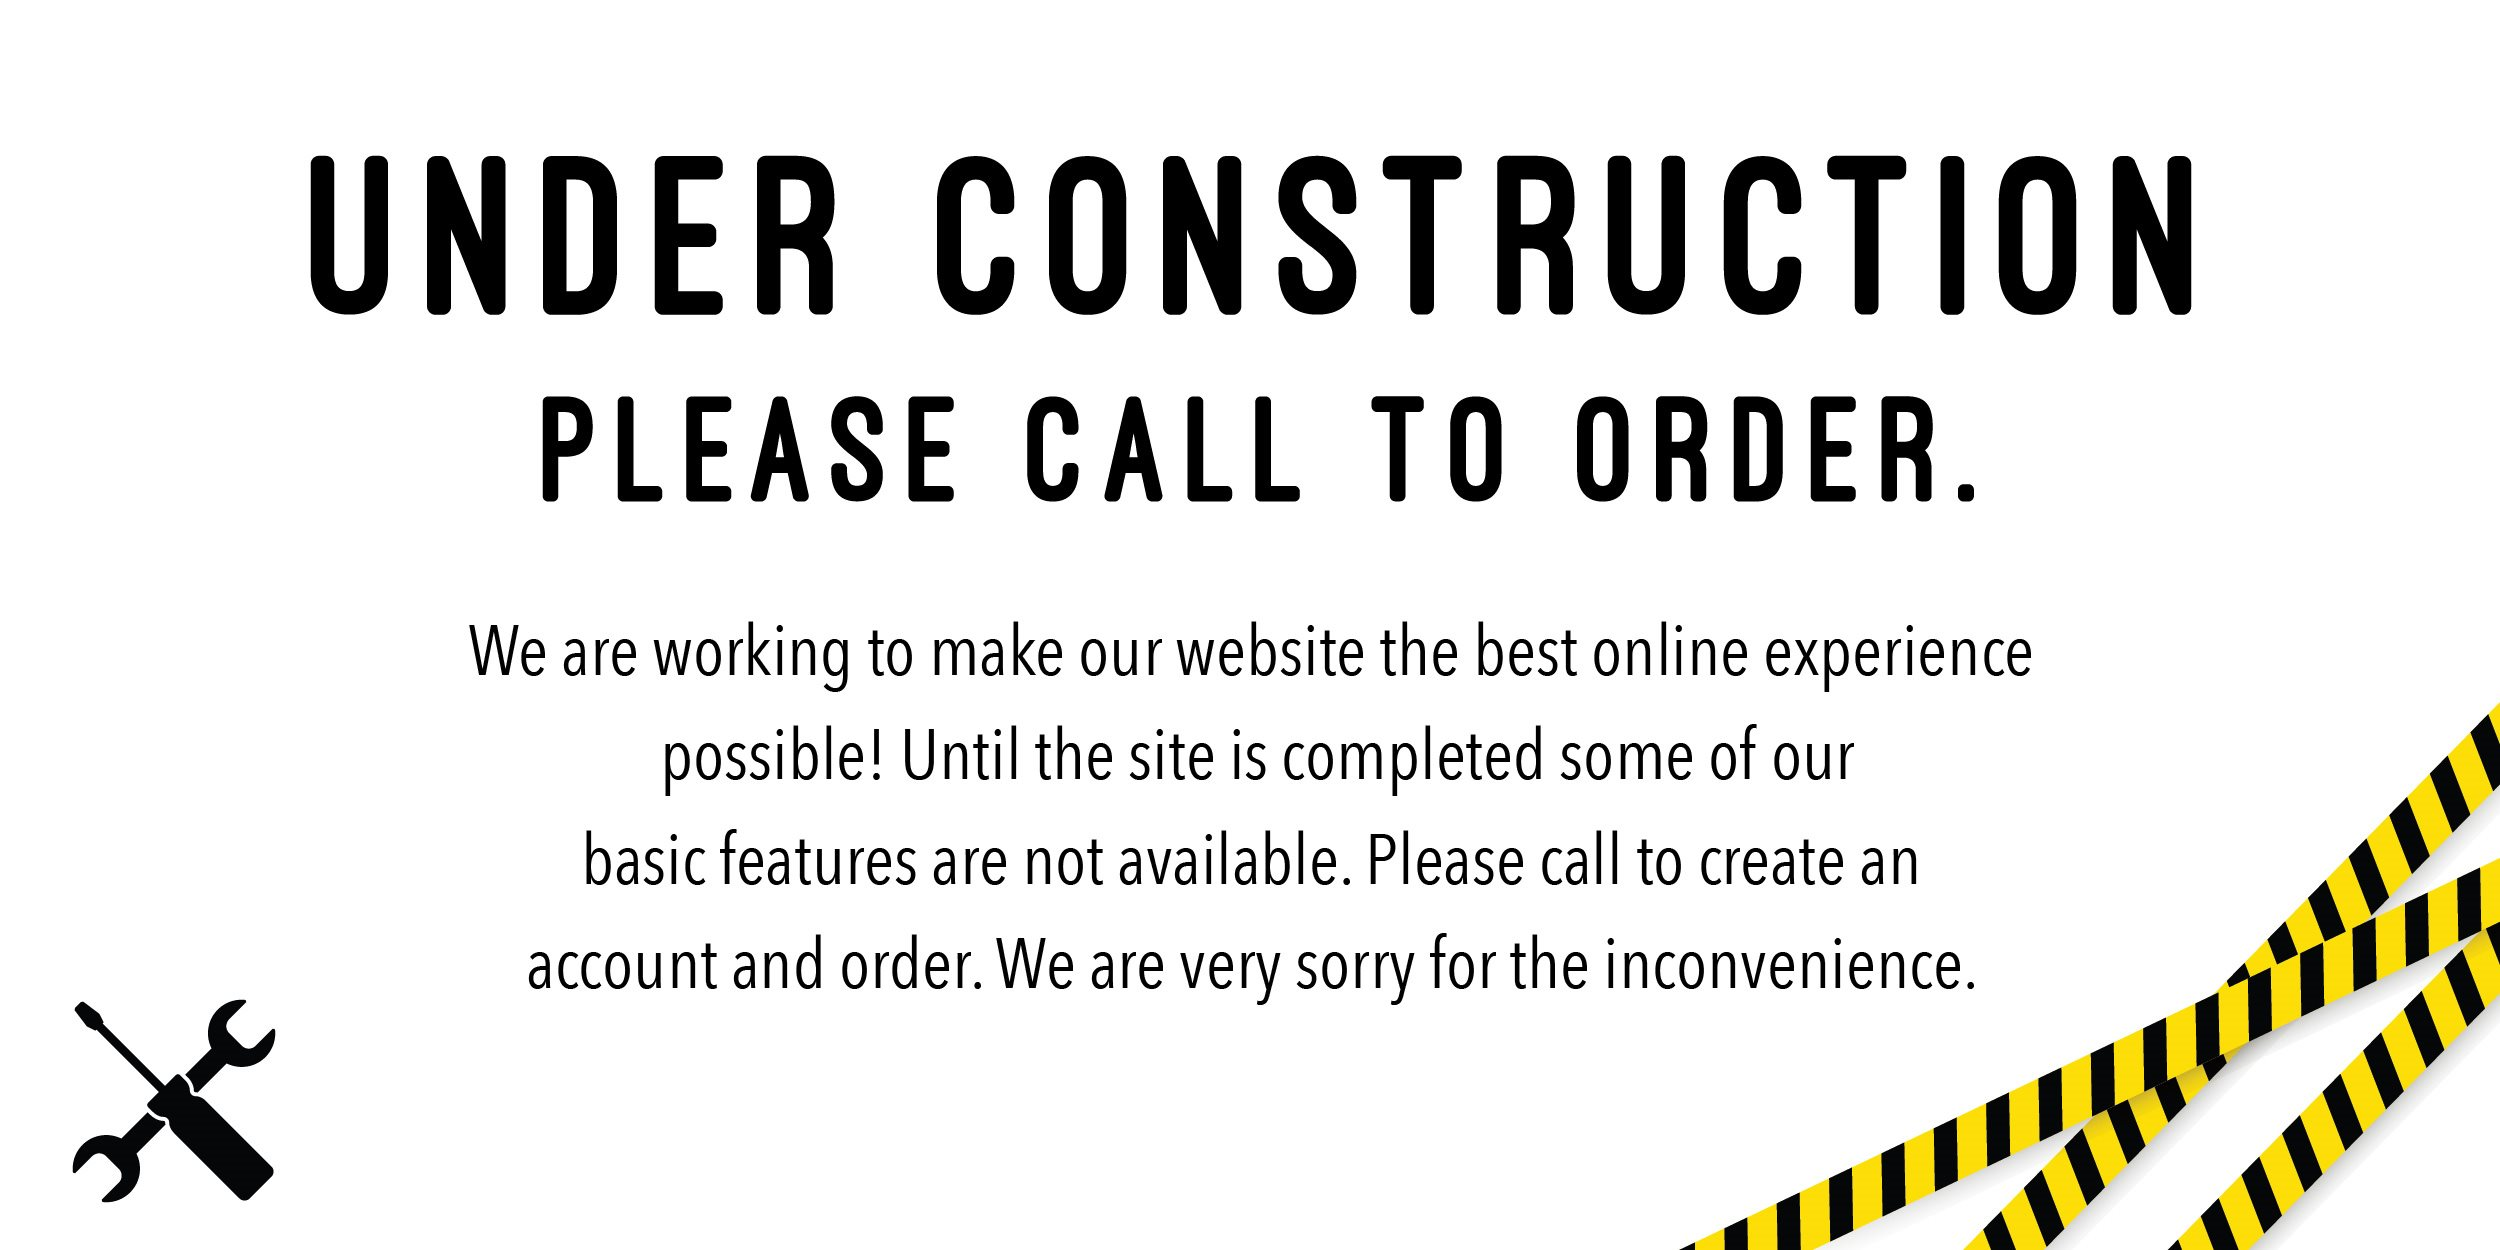 Website under construction | Call to order